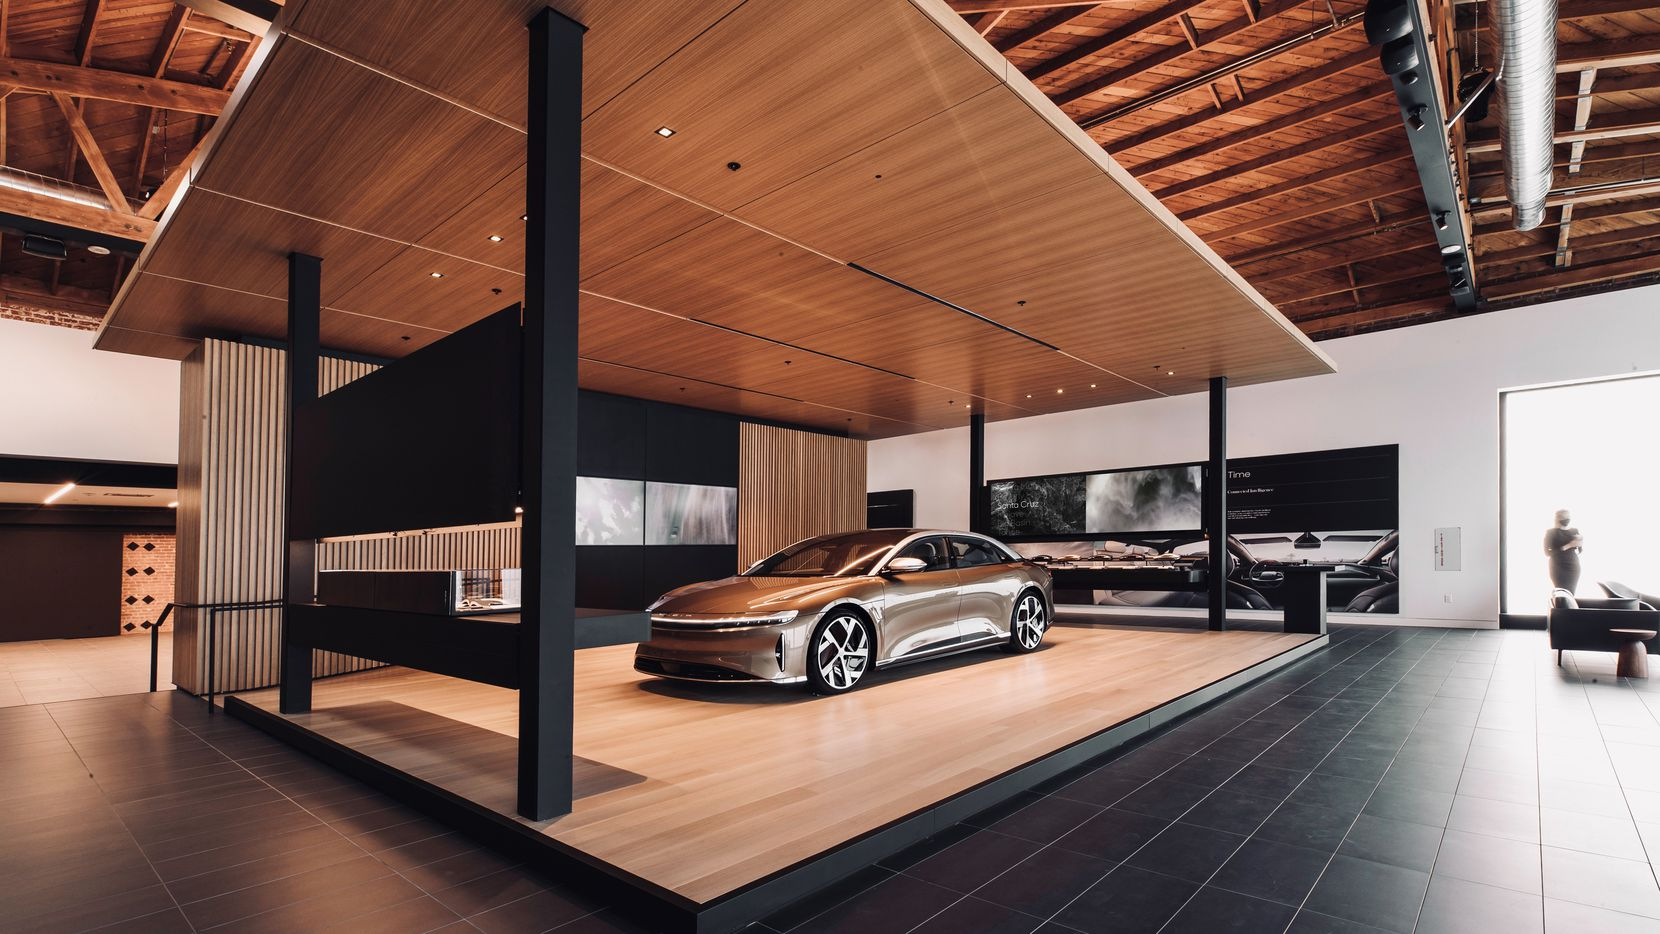 Luxury electric vehicle manufacturer Lucid Motors is exploring opening a showroom for its cars in Plano.